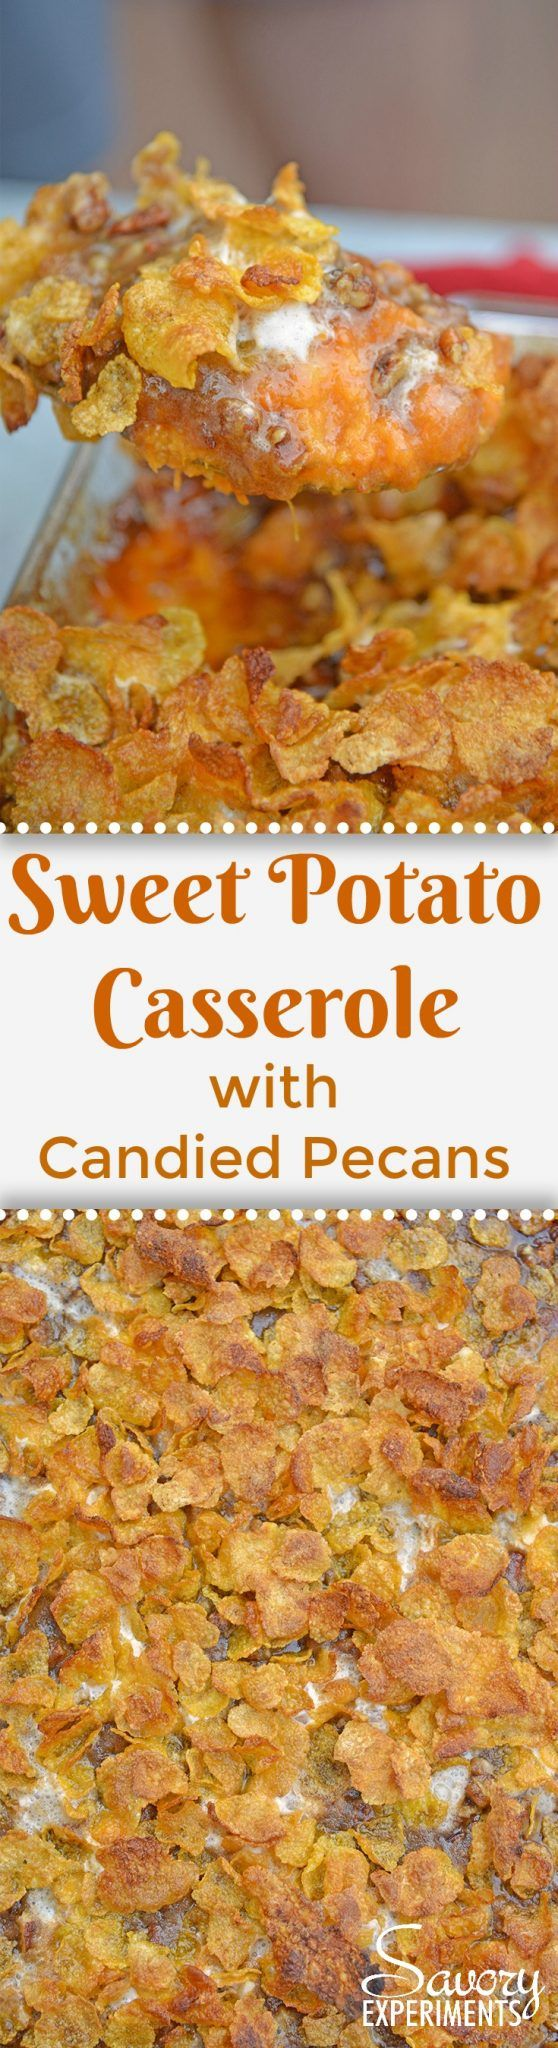 Sweet Potato Casserole with Pecans is the ultimate sweet potato souffle recipe using fresh sweet potatoes, pecan topping and marshmallows. #sweetpotatocasserole #sweetpotatosouffle www.savoryexperiments.com via @savorycooking